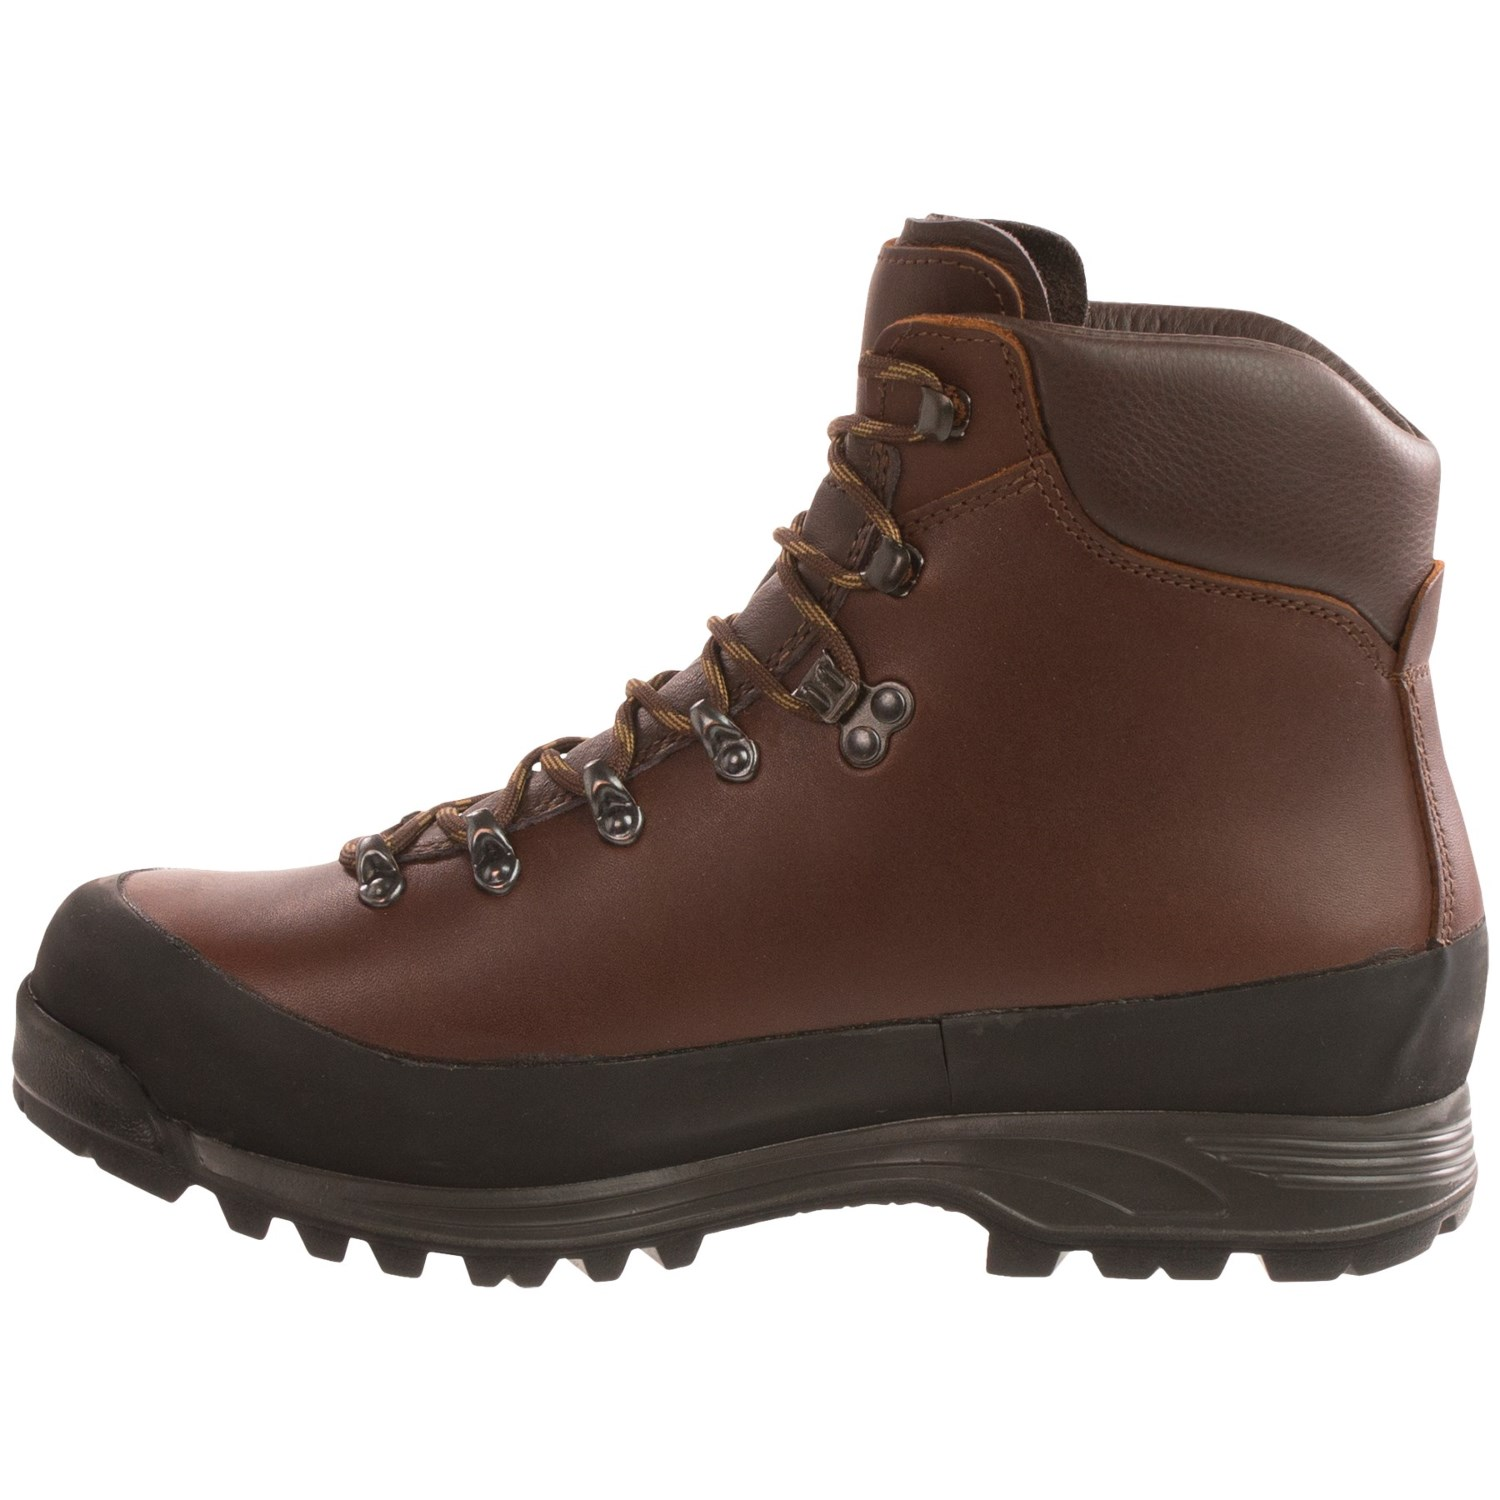 Alico Ultra Hiking Boots (For Men) - Save 62%